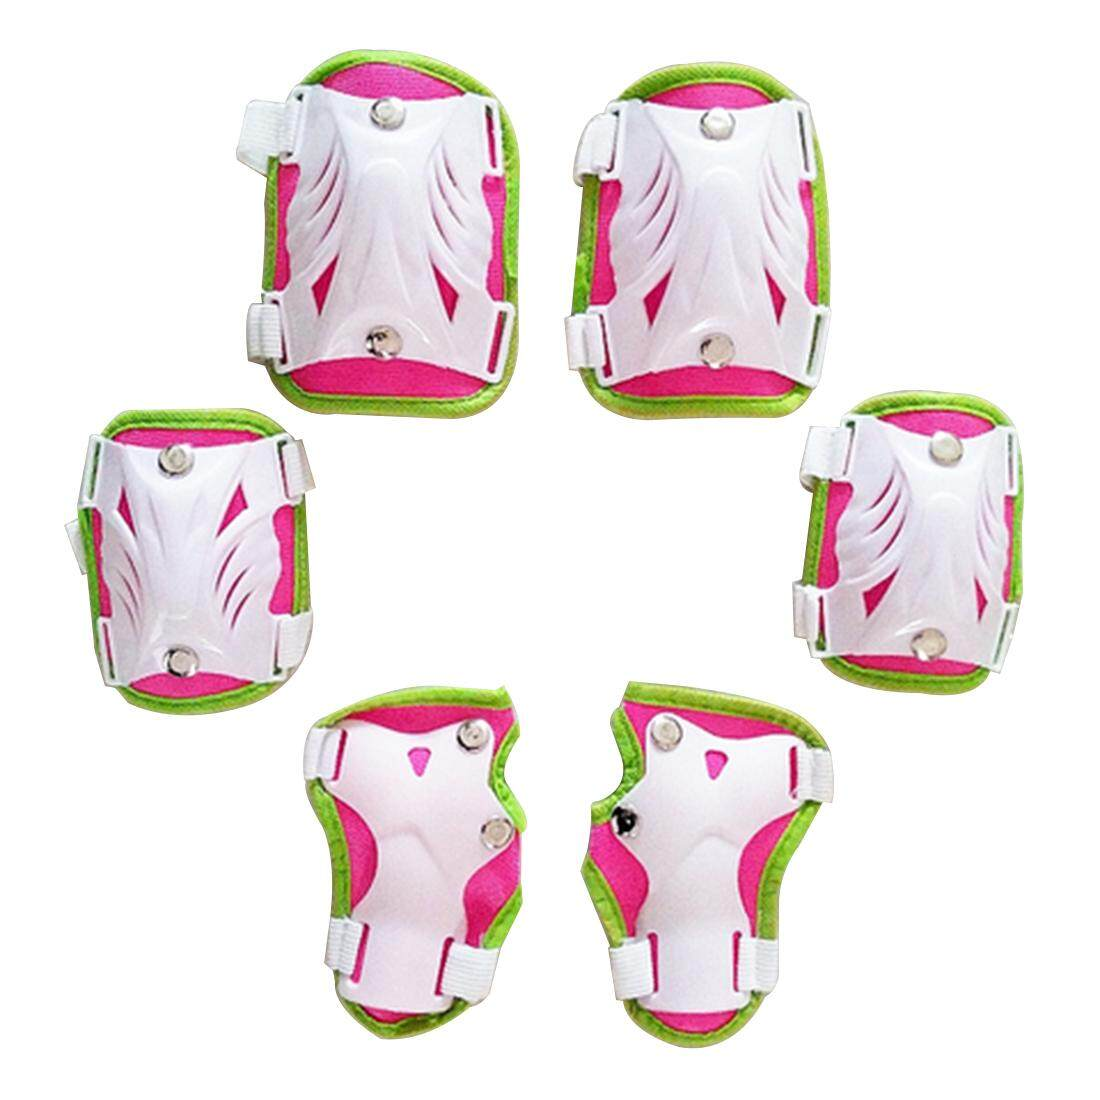 Giá bán 360WISH 6Pcs Child Sport Safety Protective Body Gear Sets for Skating Joint Protection - Pink